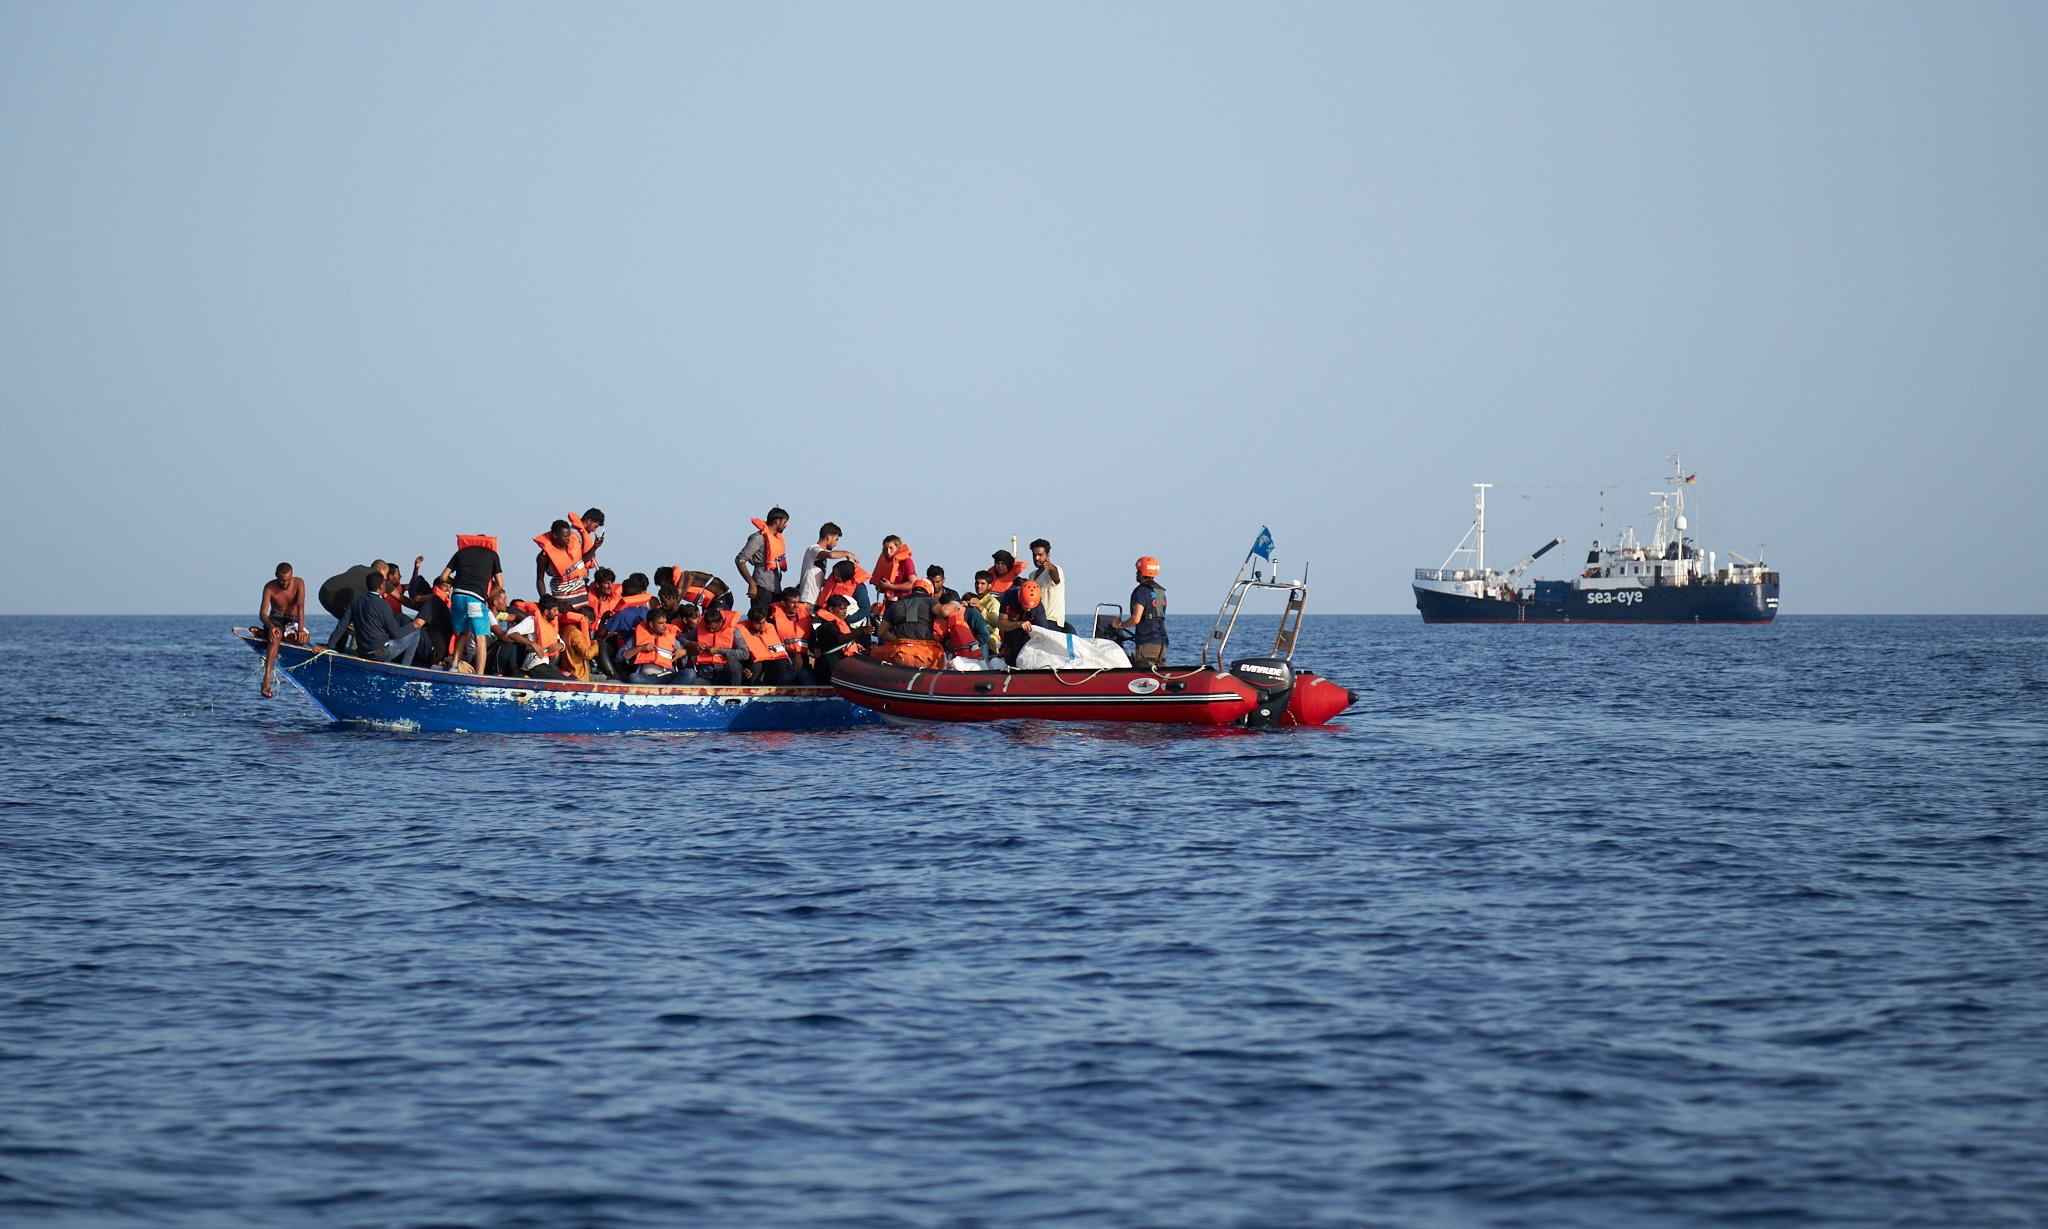 EU countries agree plan to handle migrants and refugees